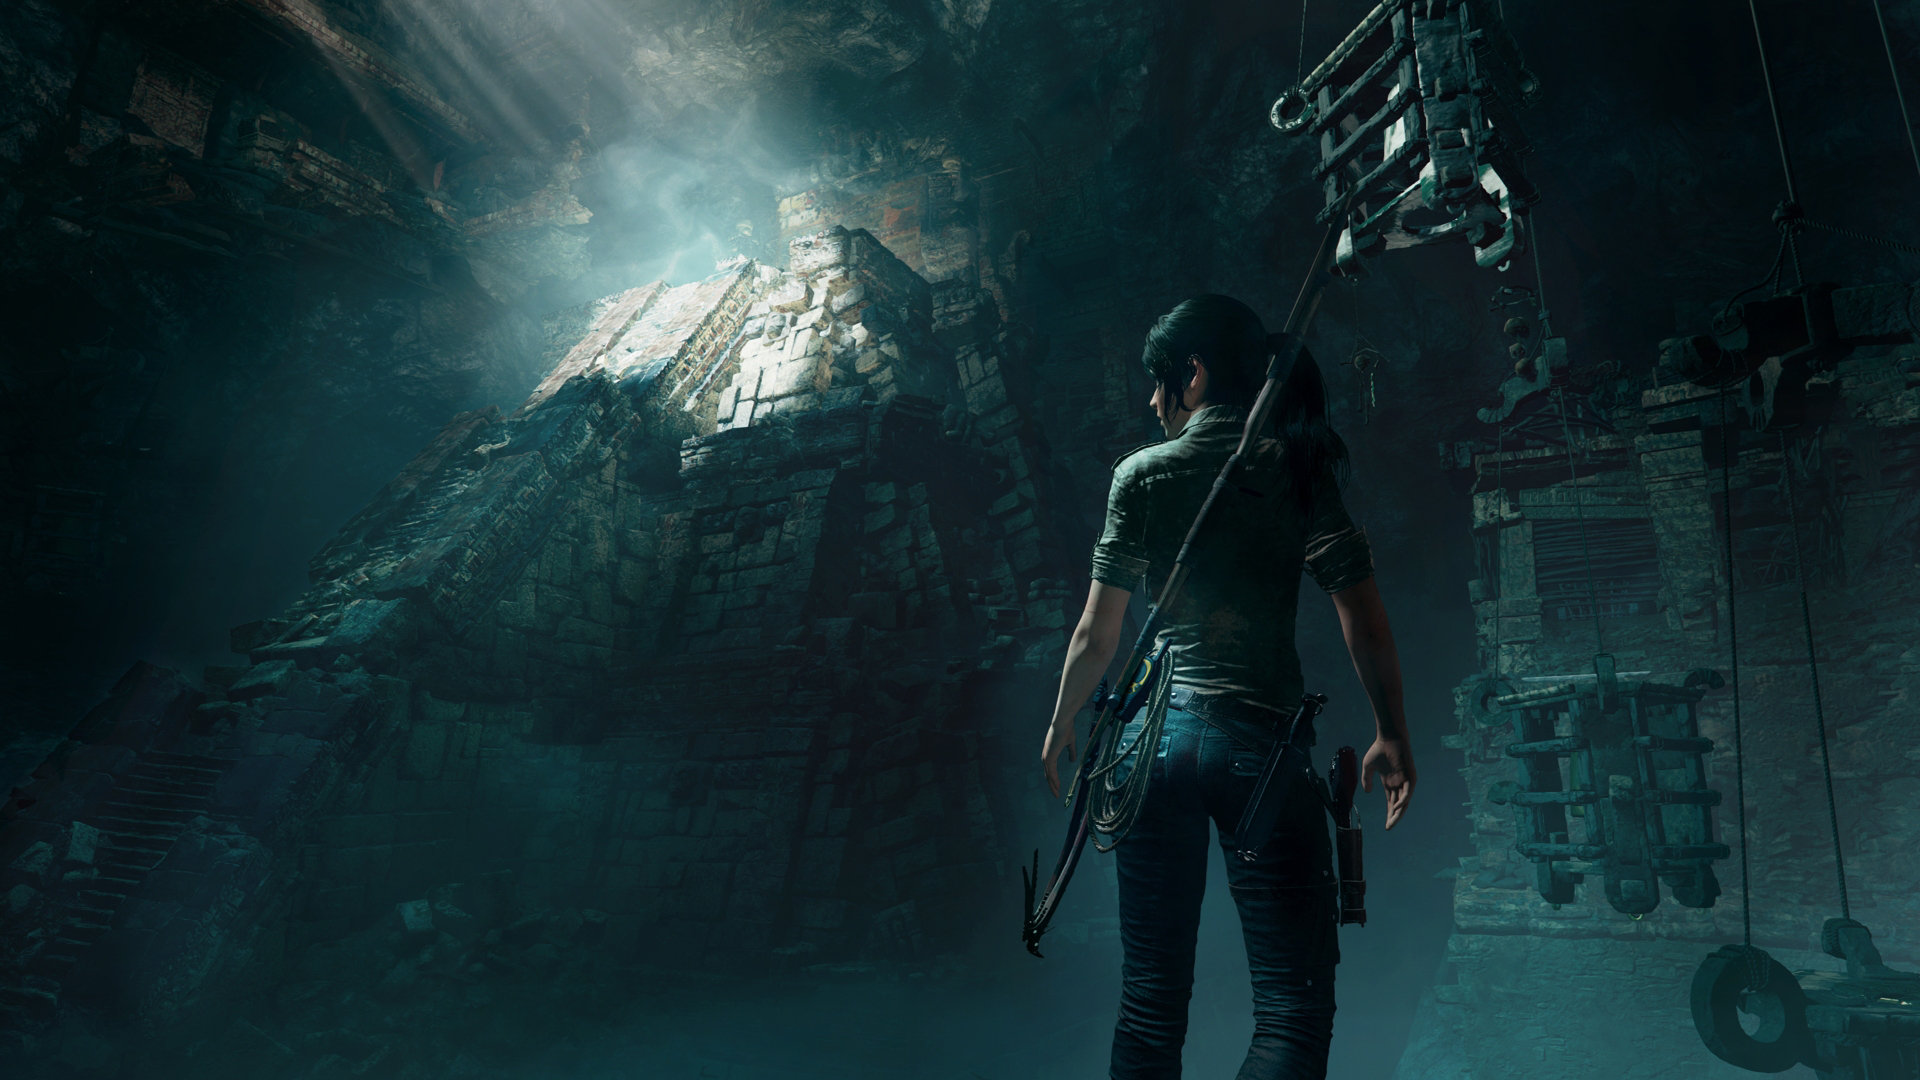 shadow-of-the-tomb-raider-screen-07-ps4-